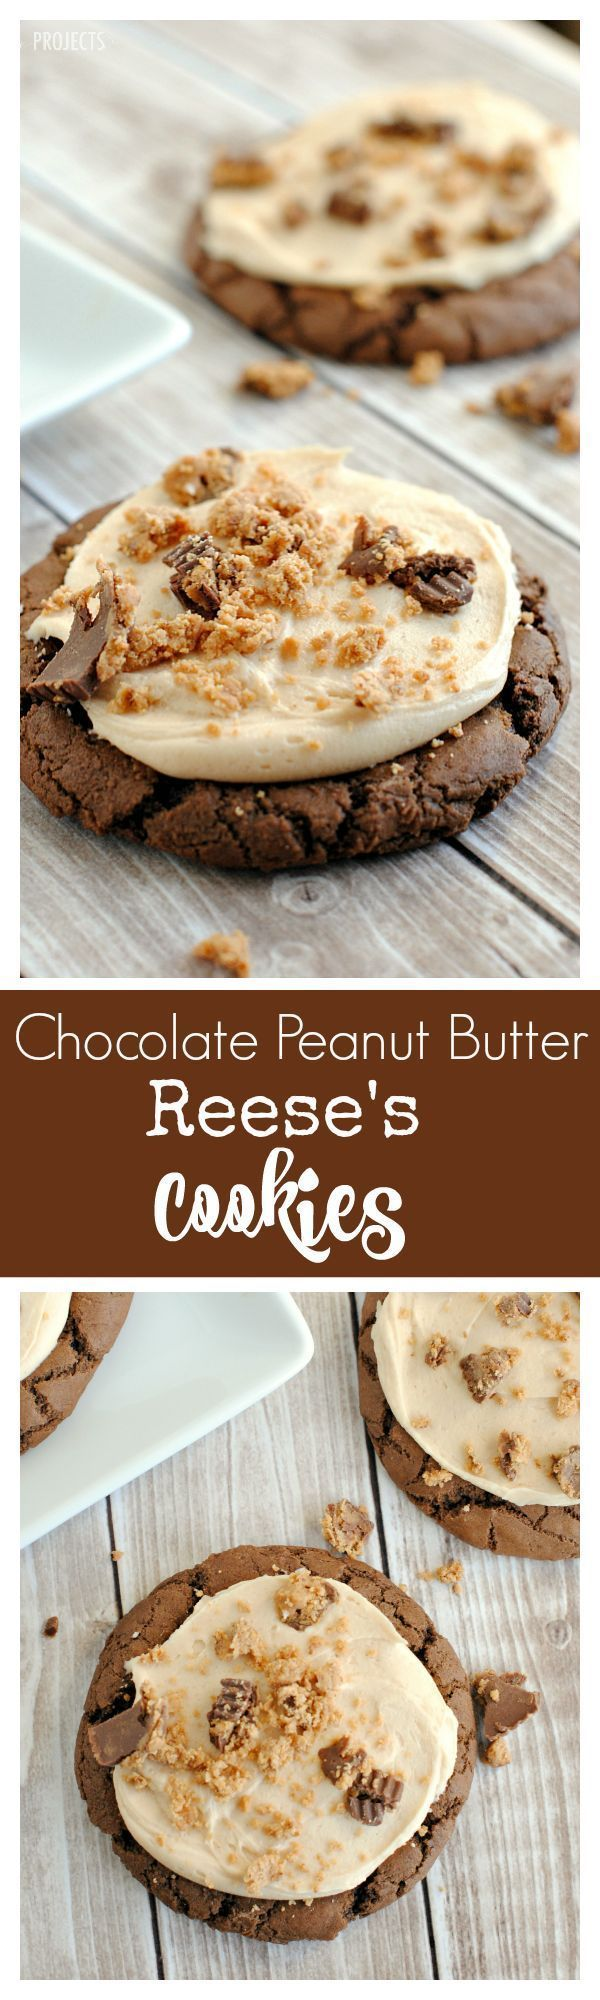 Soft and Chewy Chocolate Peanut Butter Reese's Cookies